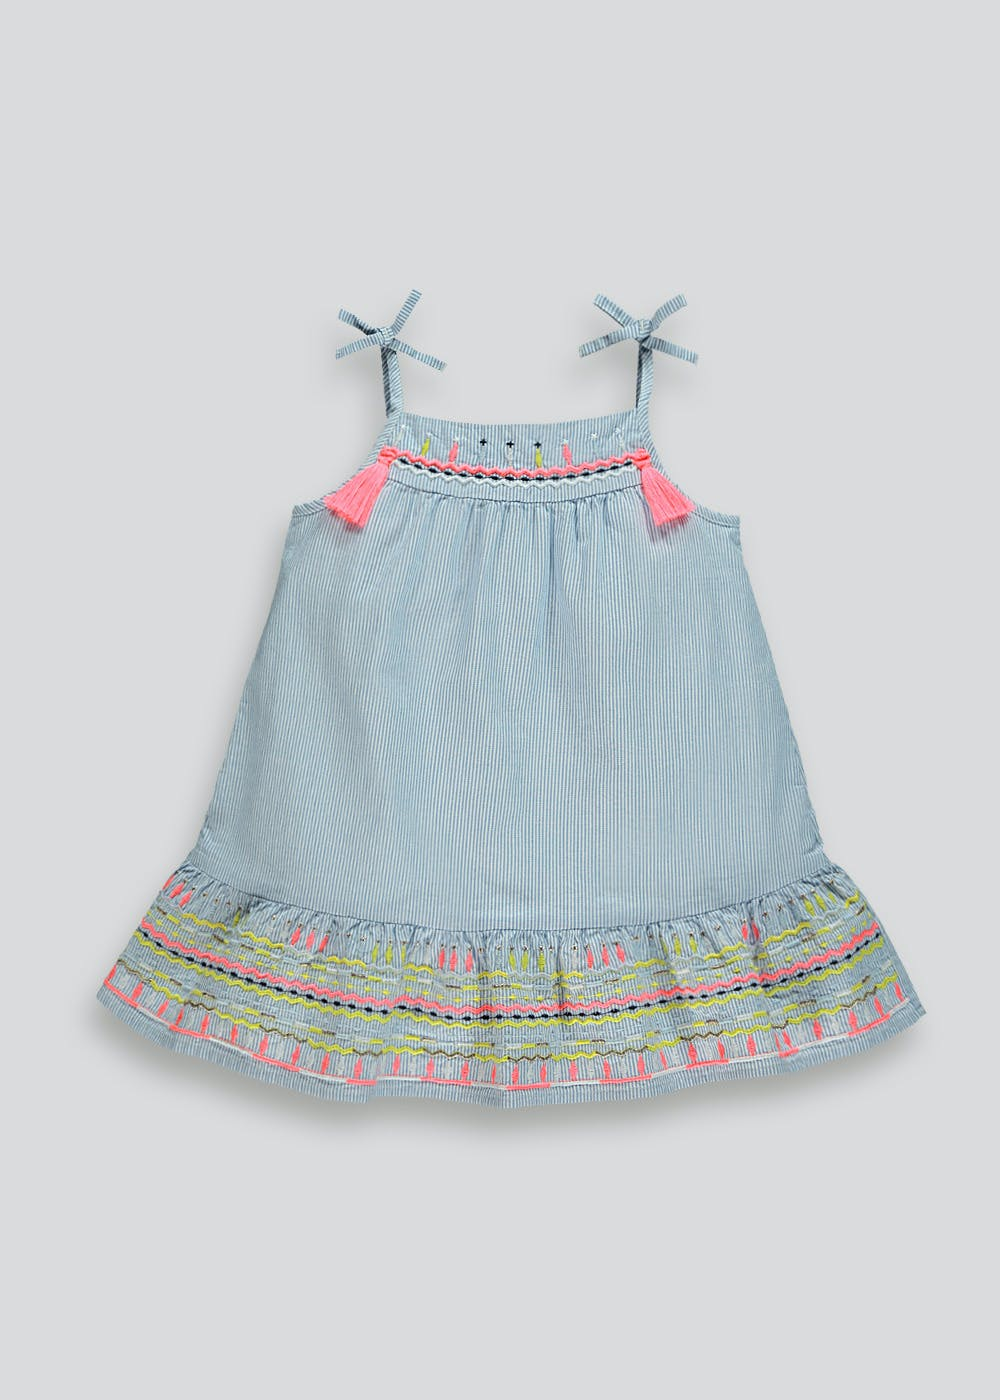 Girls Sets 2019 Girl Spring Bow Ruffles Denim Button Shirt+tulle Tutu Skirts Two Pcs Suits Kids Clothing Children Clothes 2-6y Commodities Are Available Without Restriction Girls' Clothing Engagement & Wedding